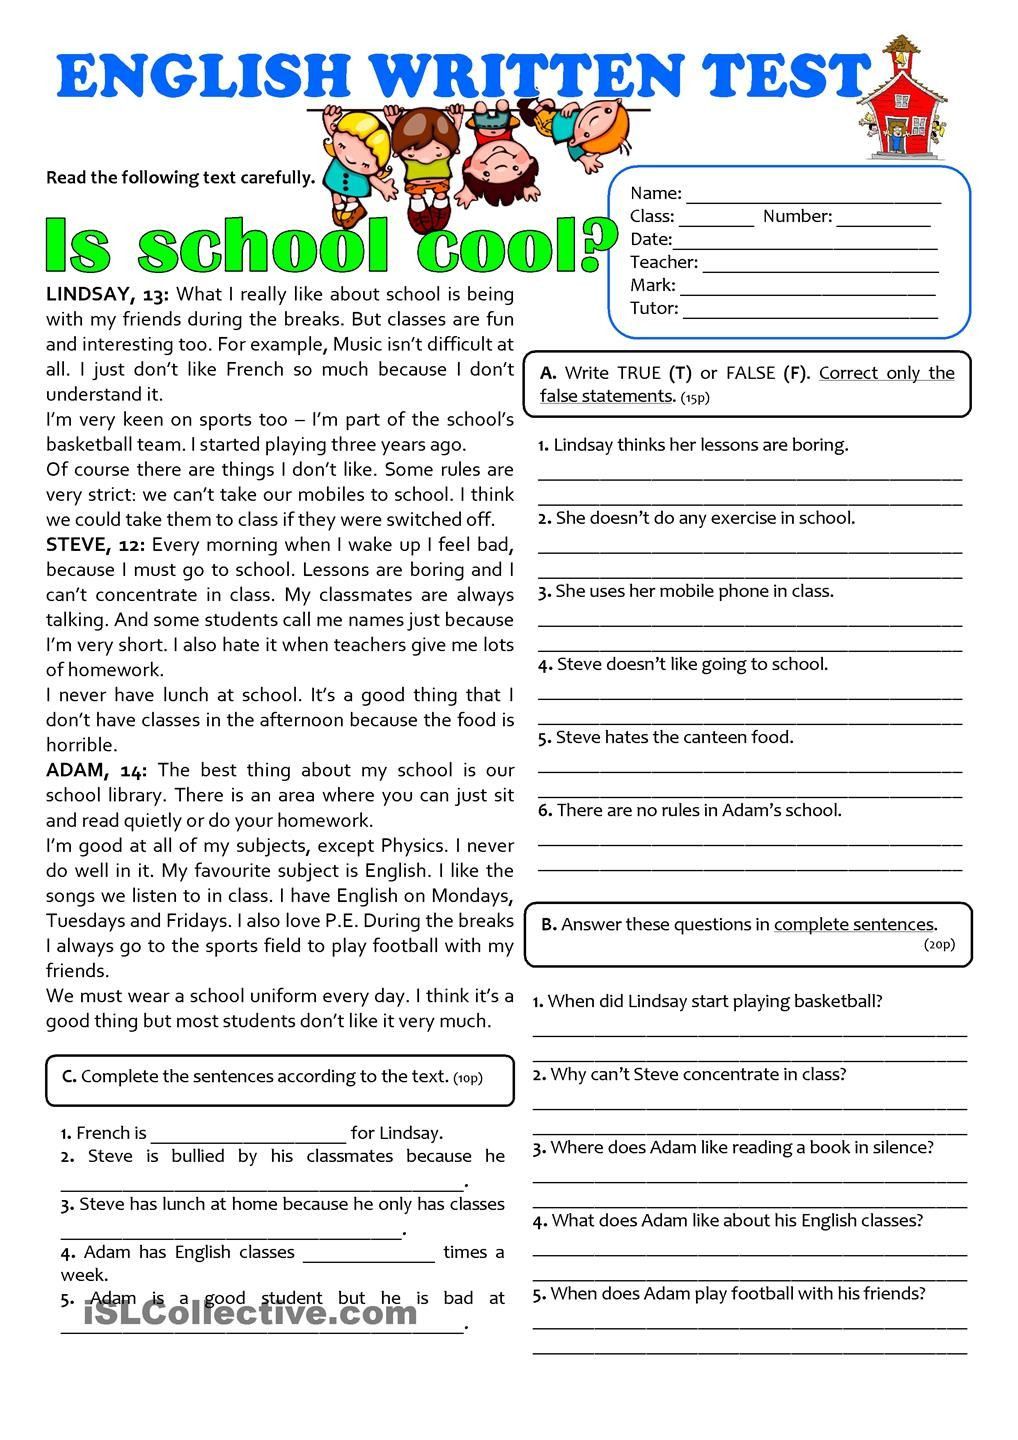 Reading Comprehension 7th Grade Worksheet Pin On Esl Worksheets Of the Day